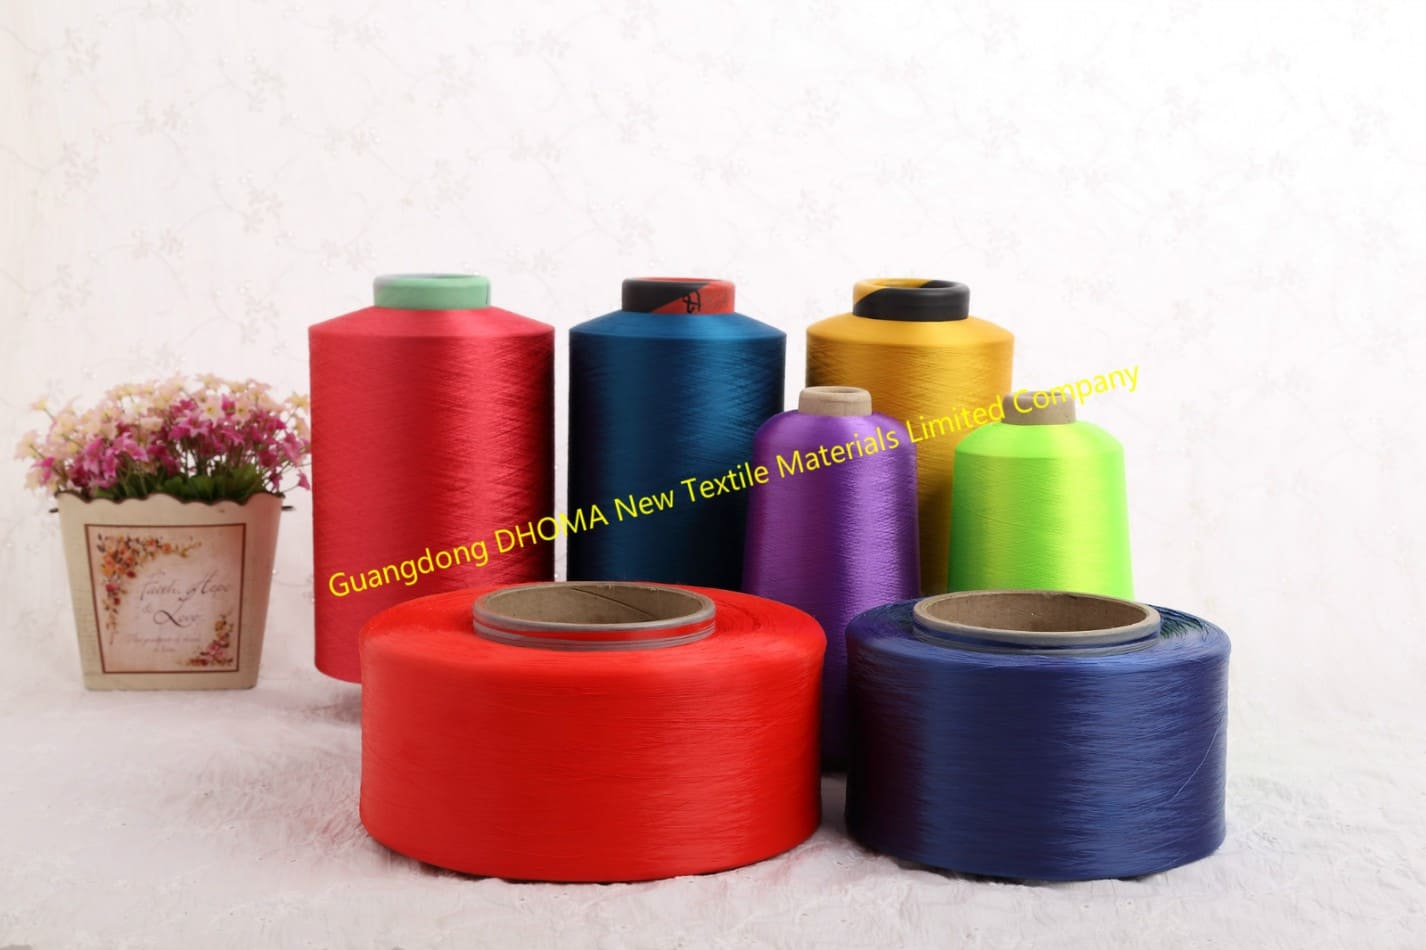 Guangdong DHOMA New Textile Materials Limited Company